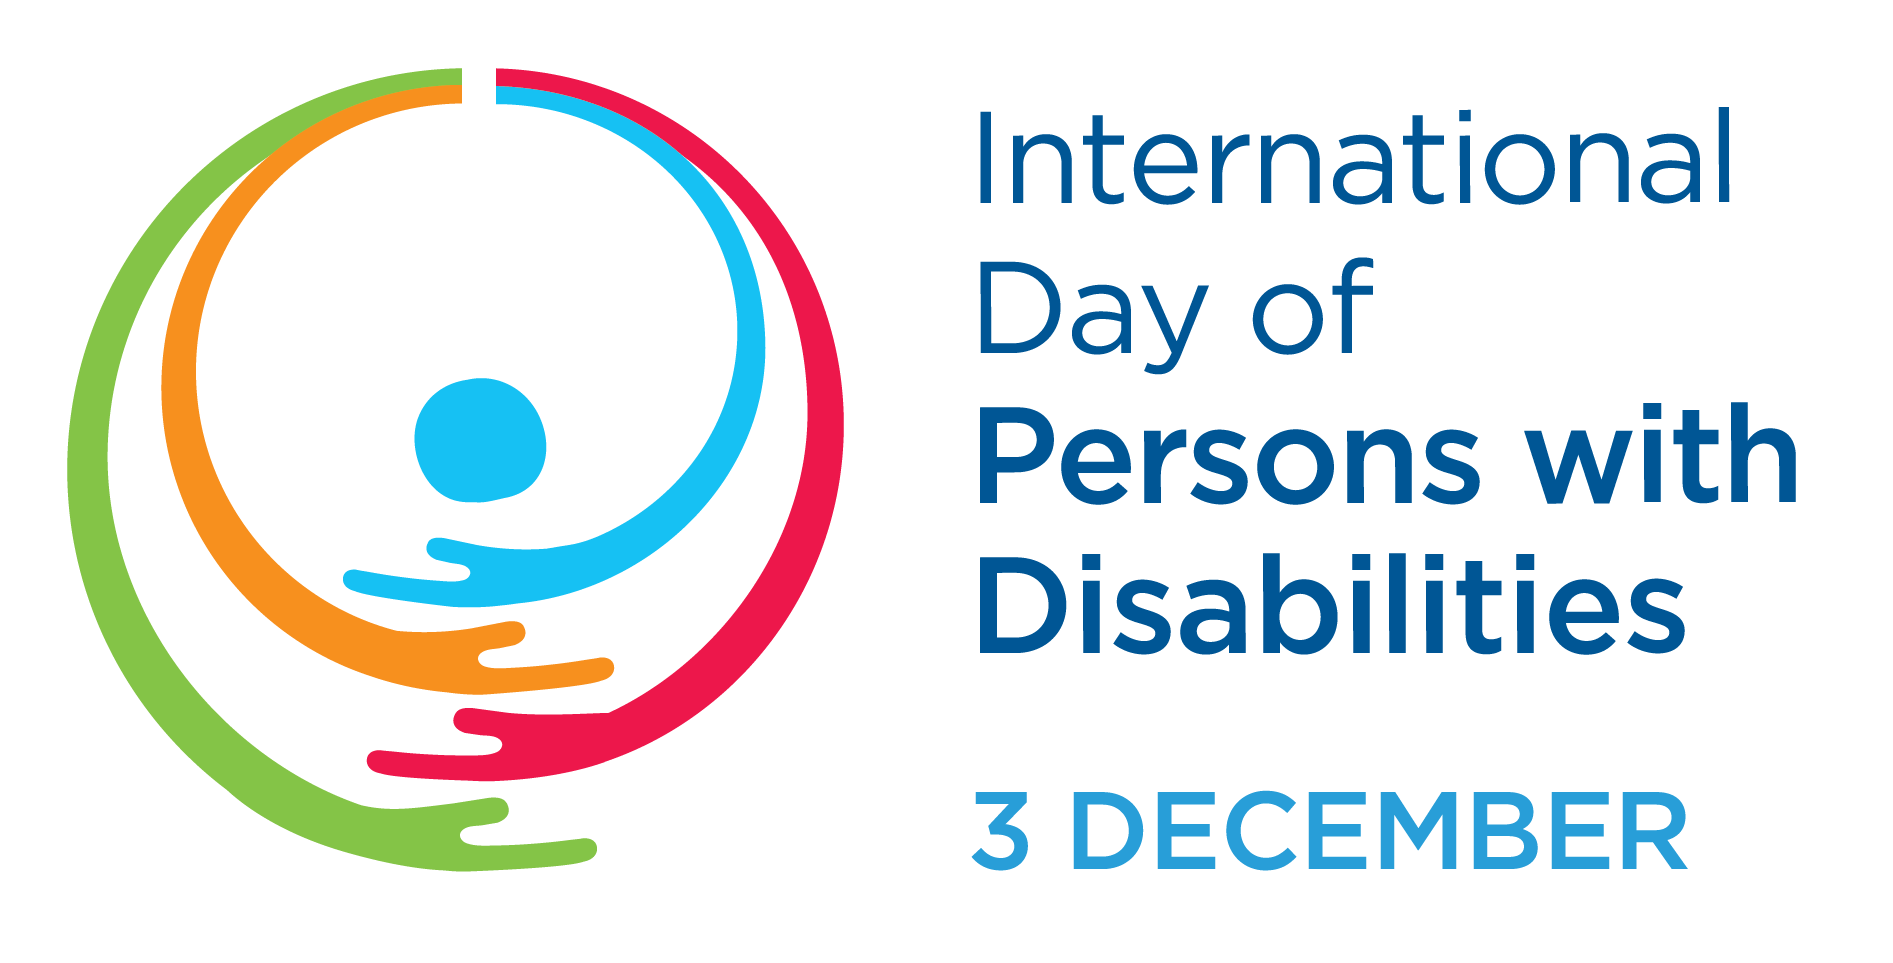 Celebrating the International Day of Persons with Disabilities